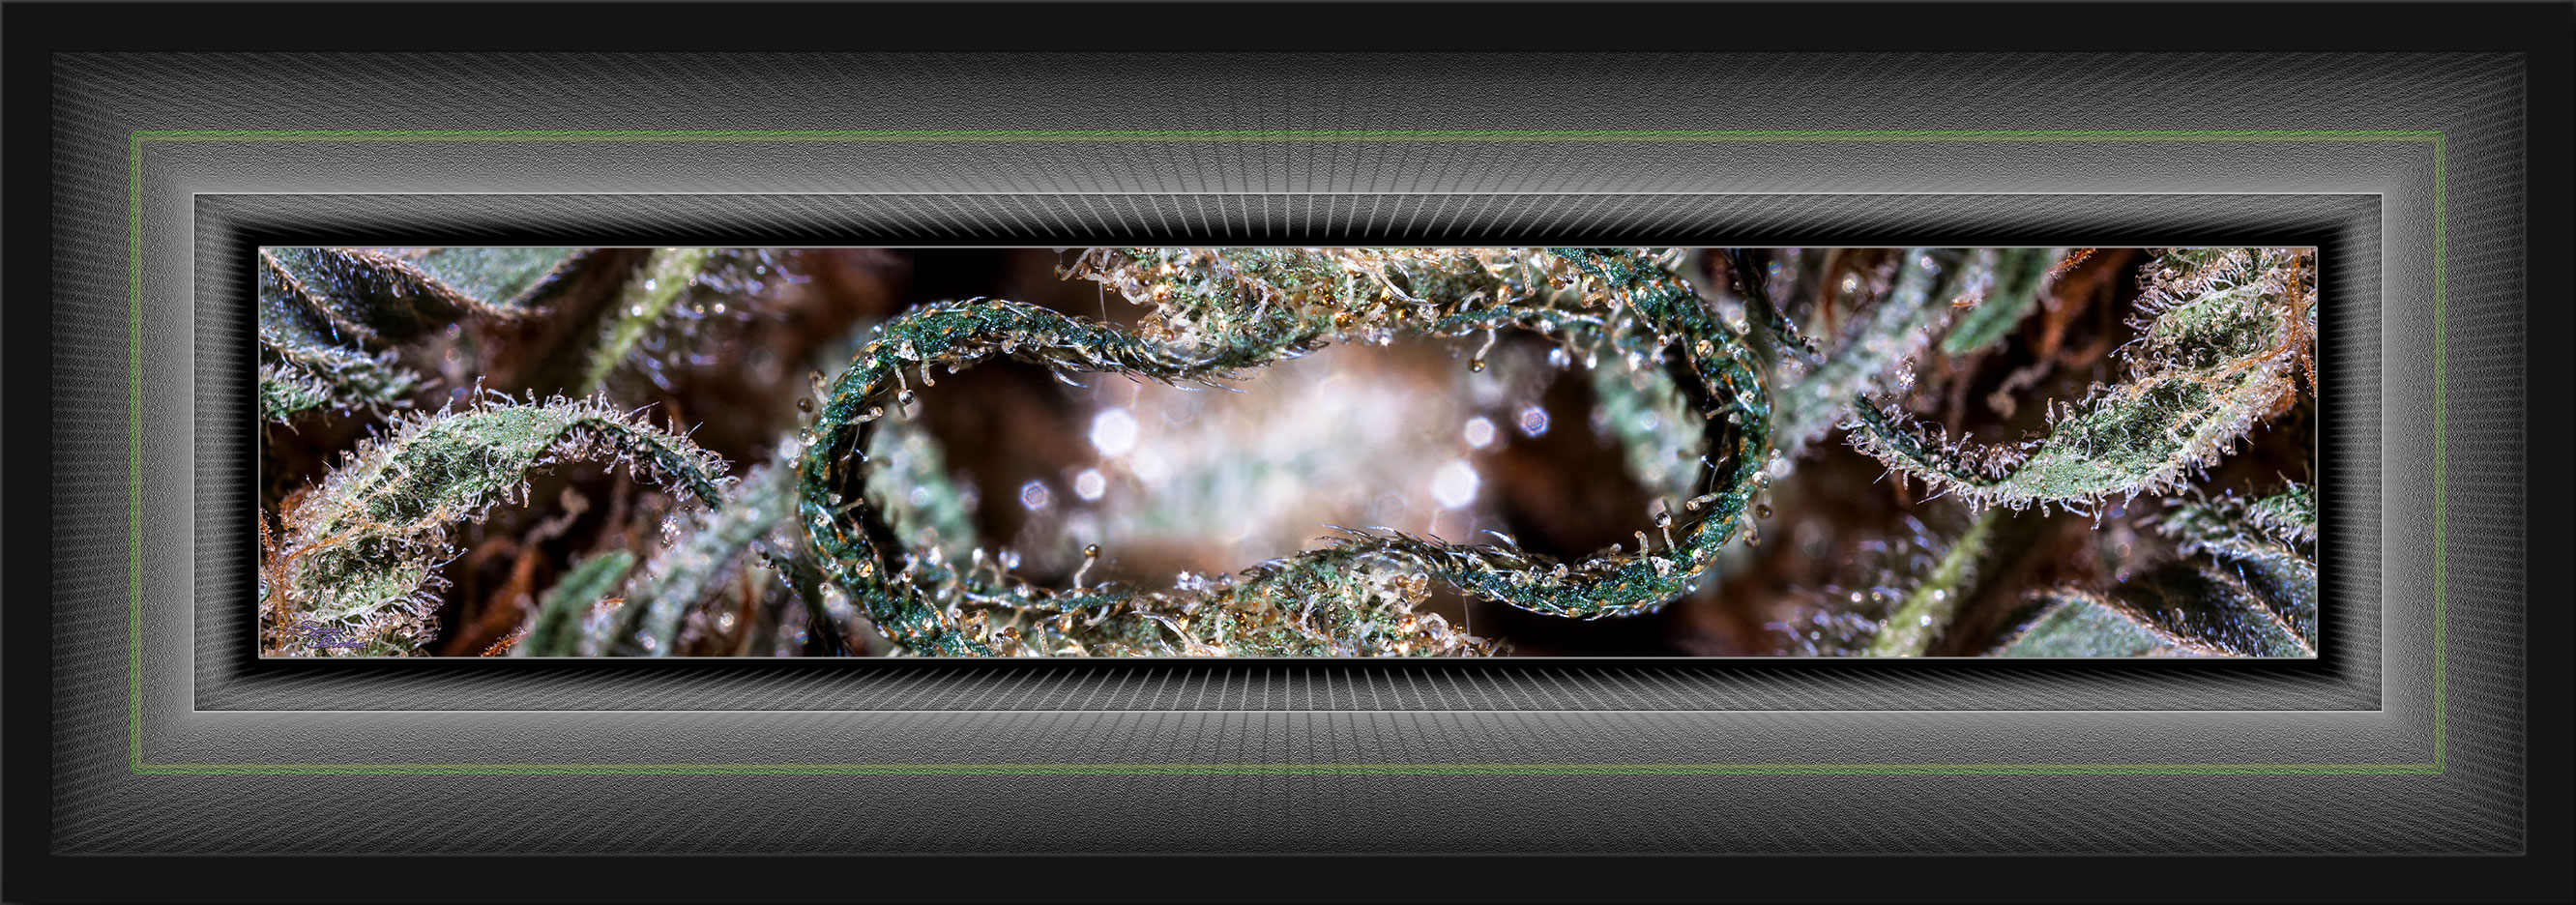 """Shishkaberry"", Size: 36x12, Framed Art"